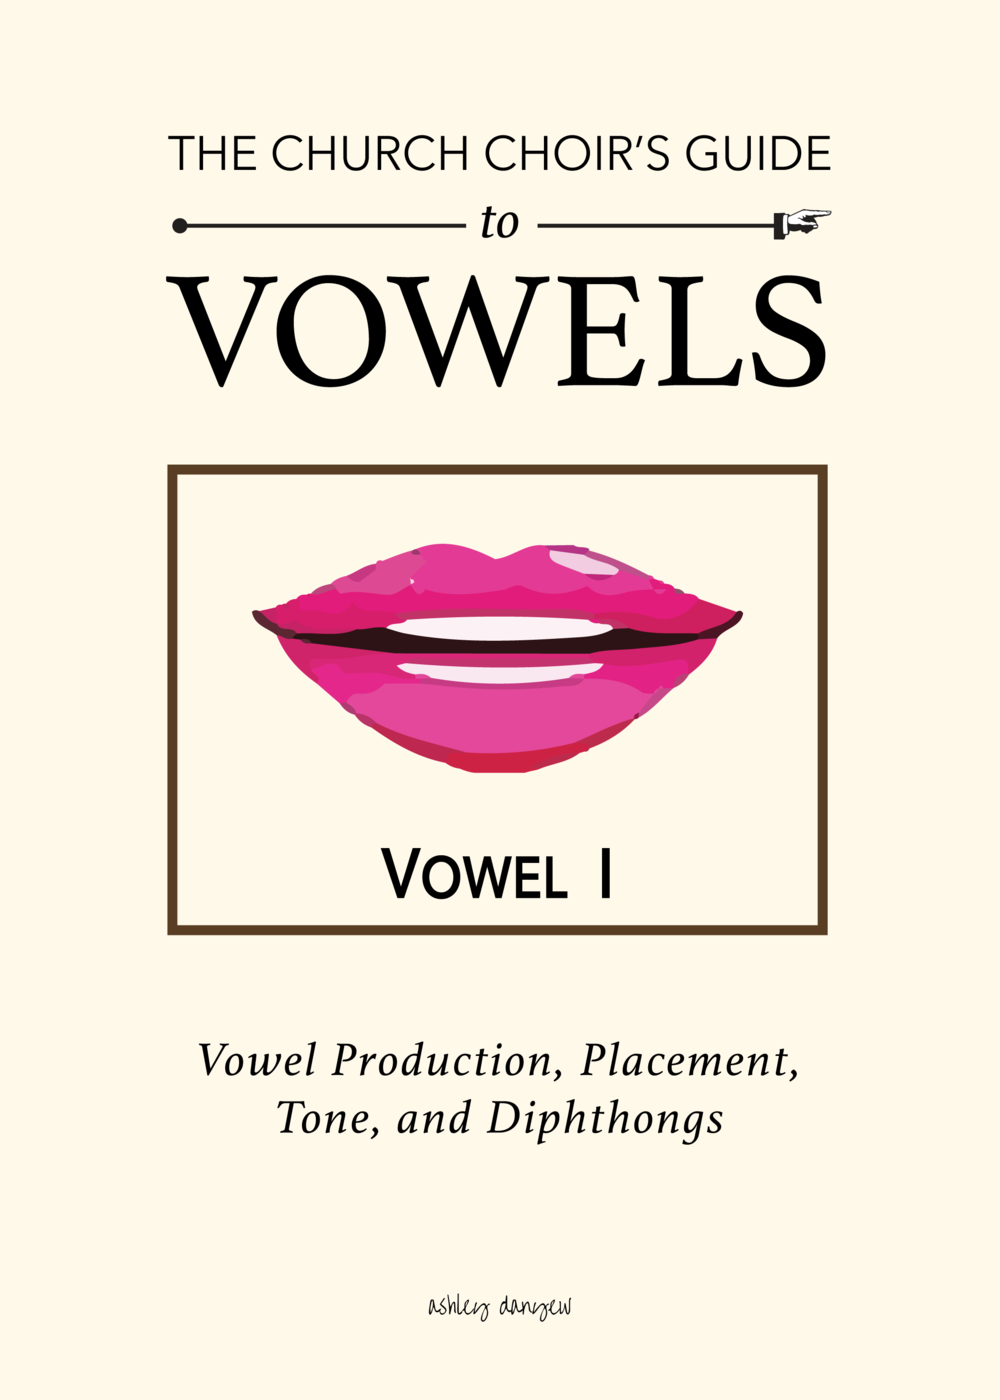 Copy of The Church Choir's Guide to Vowels - Part I